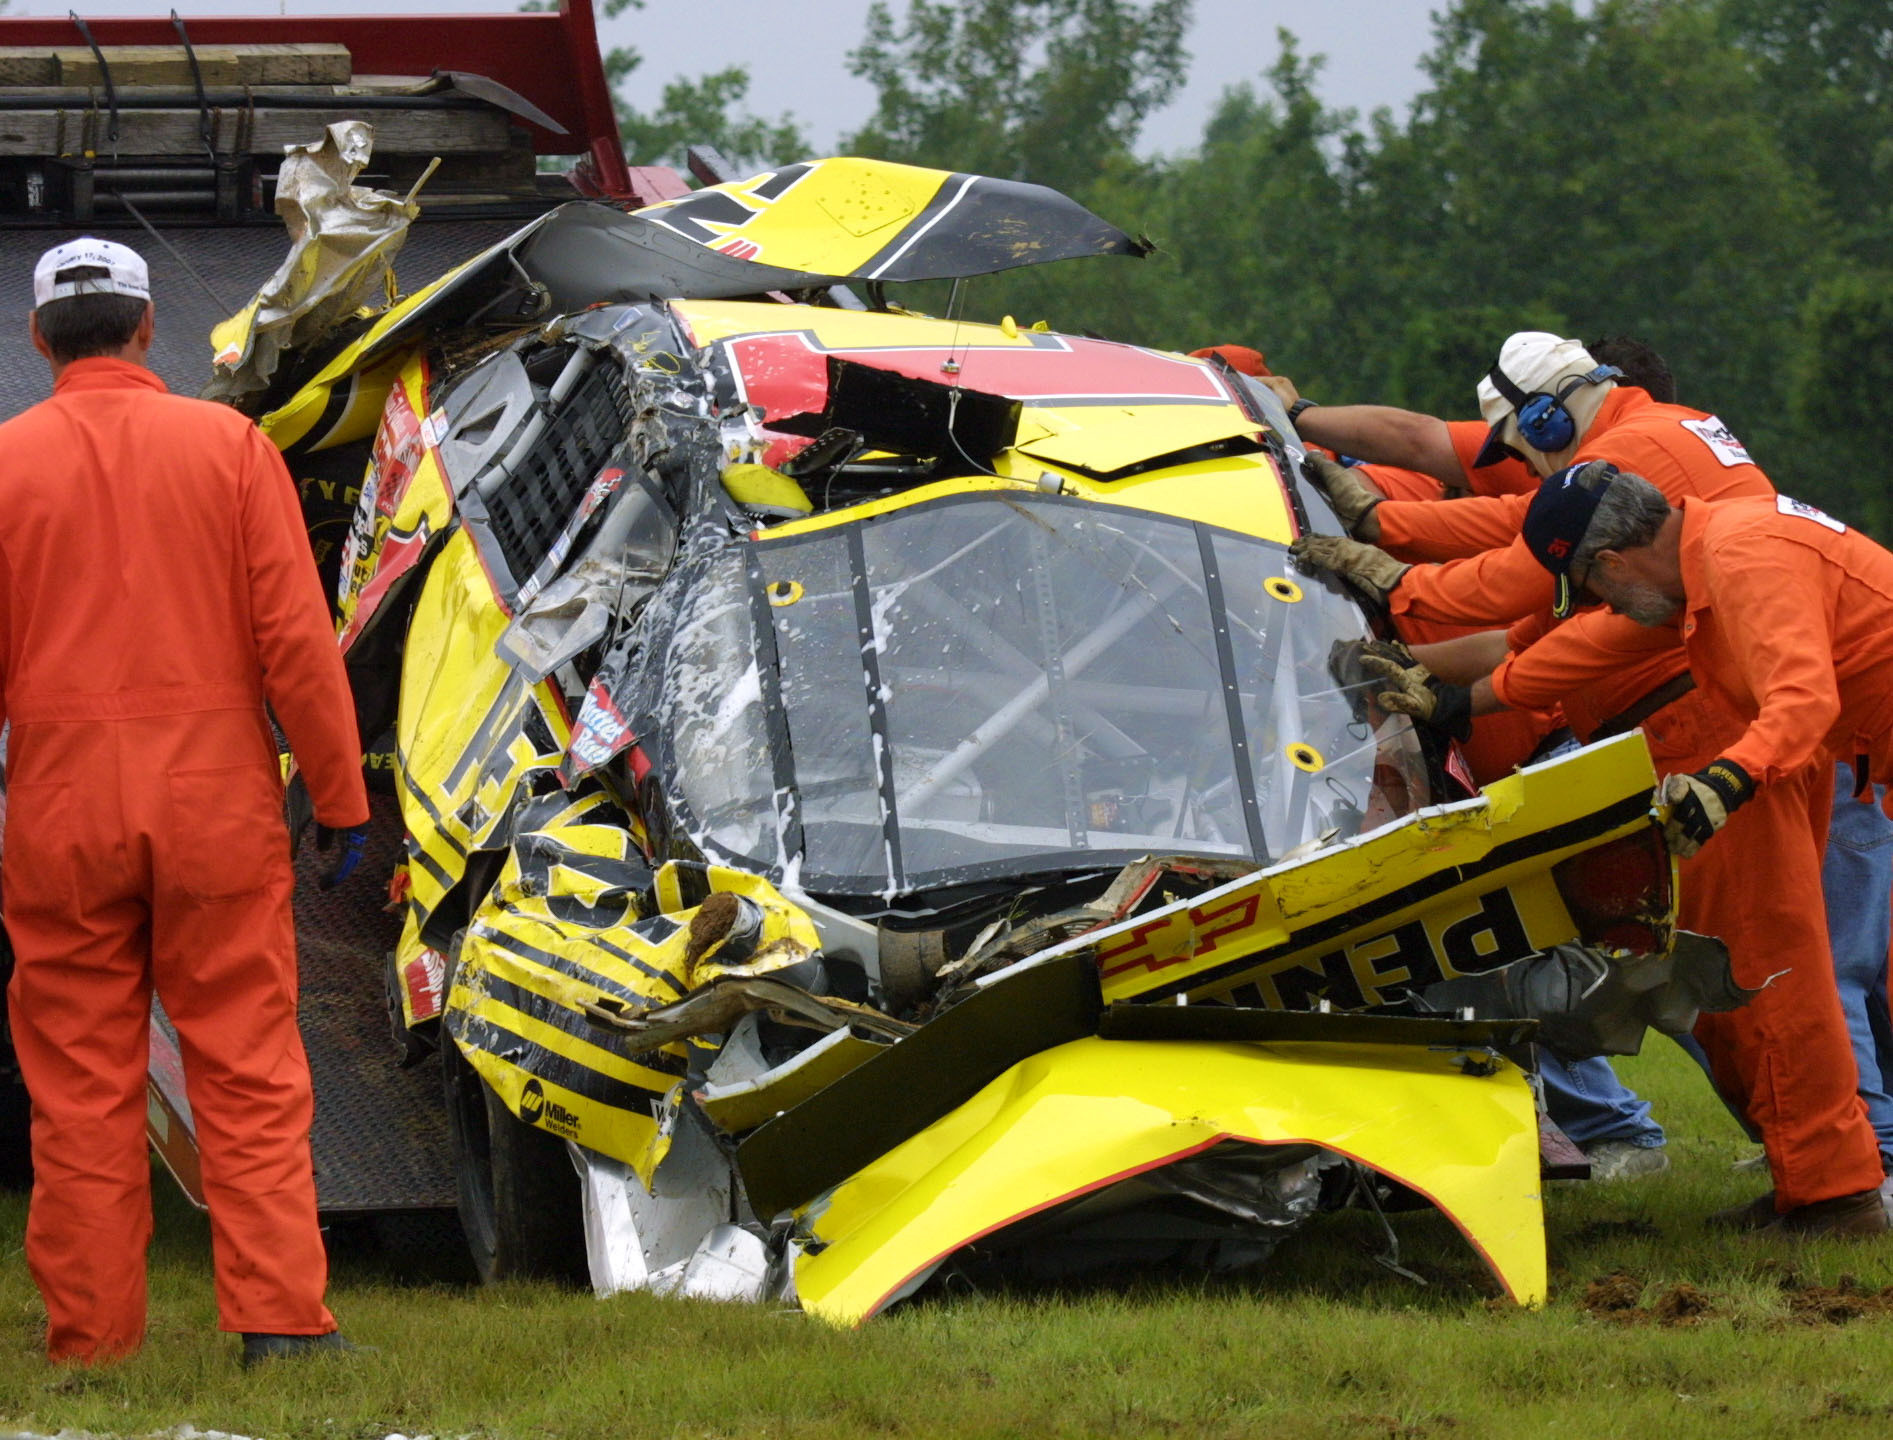 Major Crashes At Pocono Raceway The Morning Call